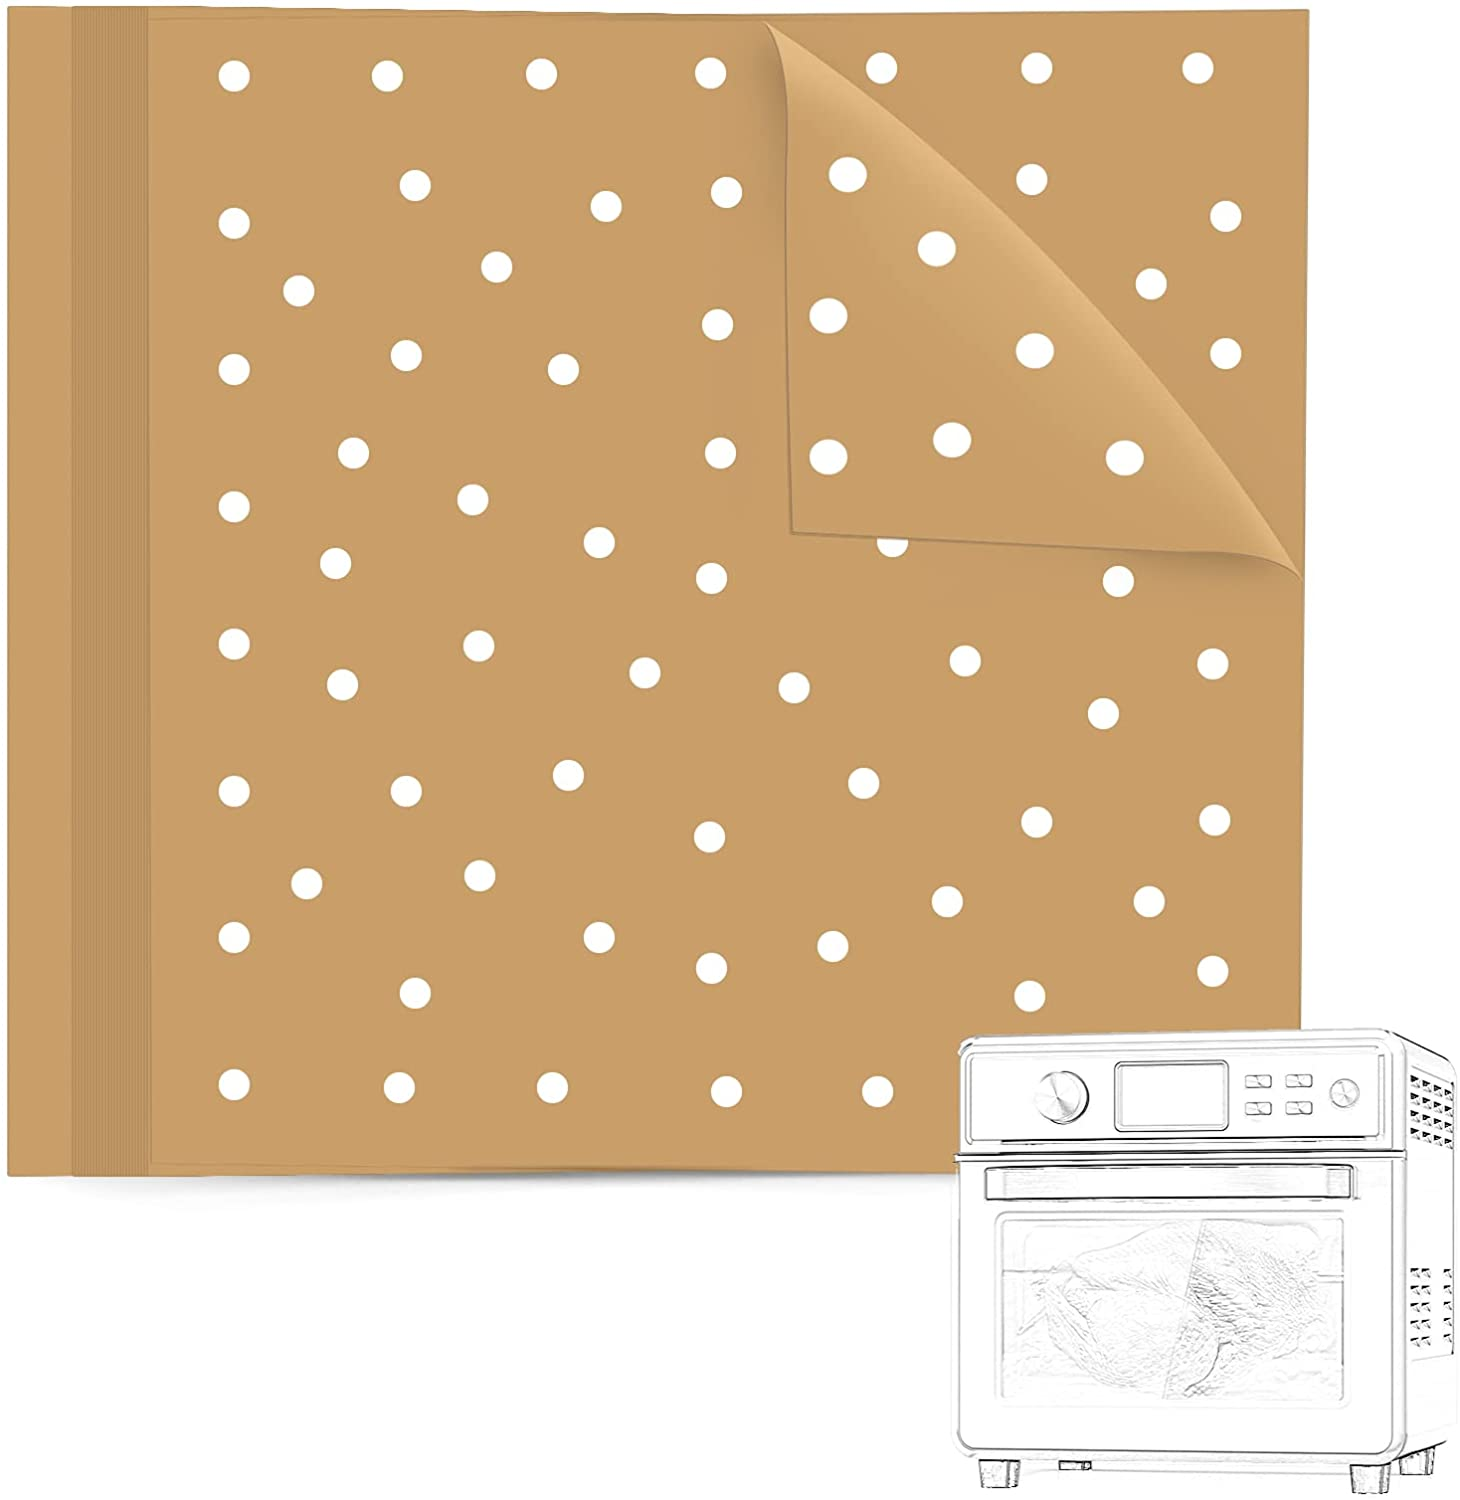 BYKITCHEN Air Fryer Oven Liners, 11x12 Inches, Nonstick Unbleached Rectangular Air Fryer Parchment Paper for Air Fryer Toaster Ovens, XL Air Fryer, Dehydrator and More (Set of 100)